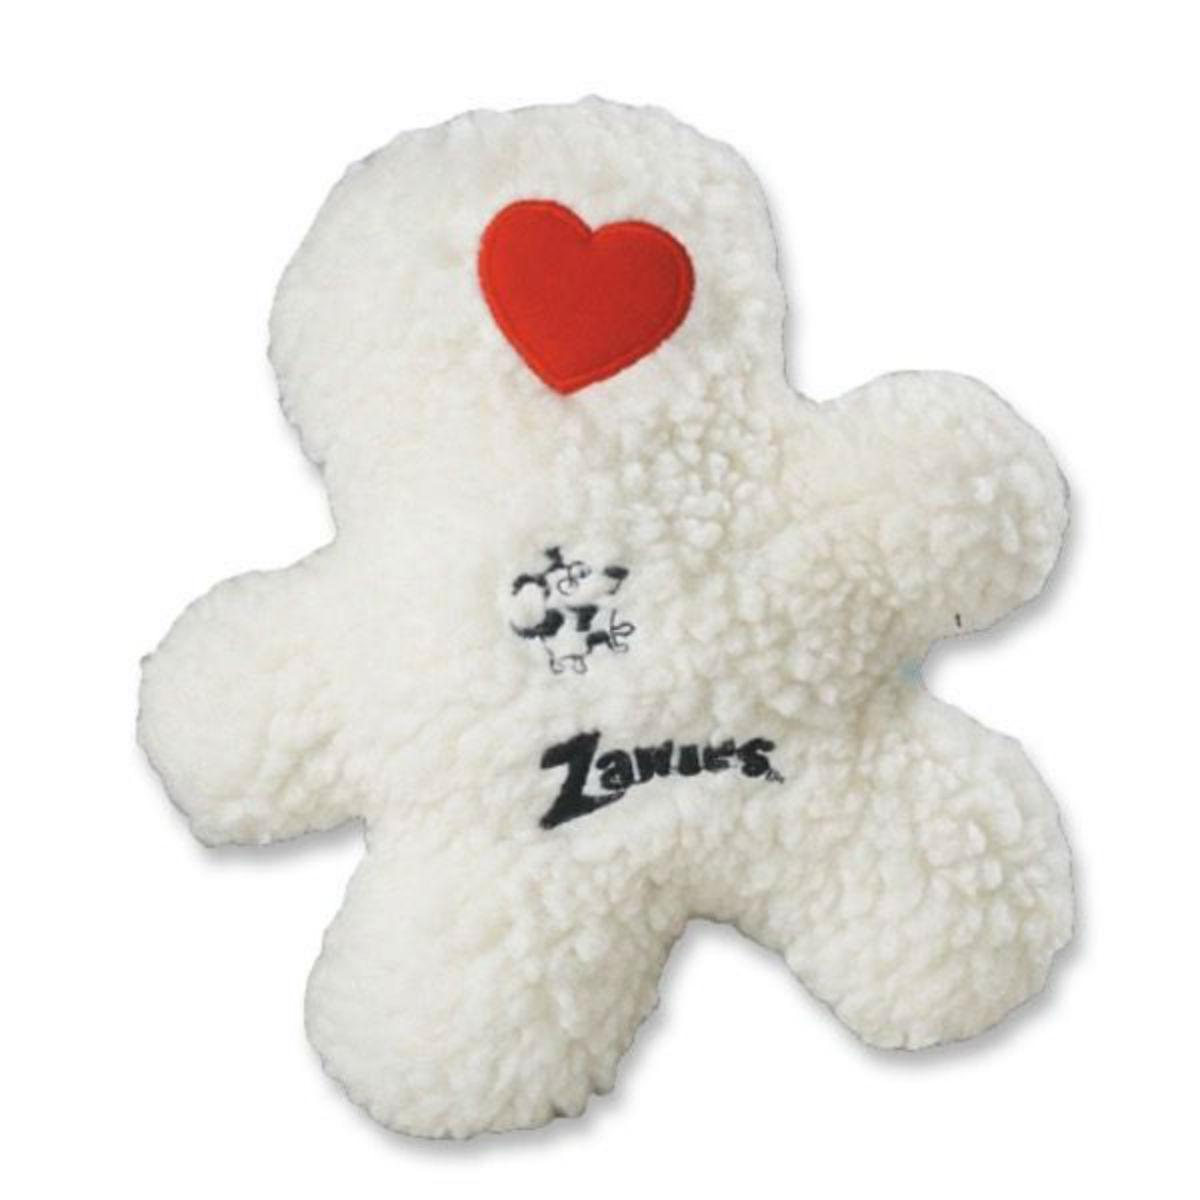 Zanies Embroidered Berber Boys Dog Toy - White